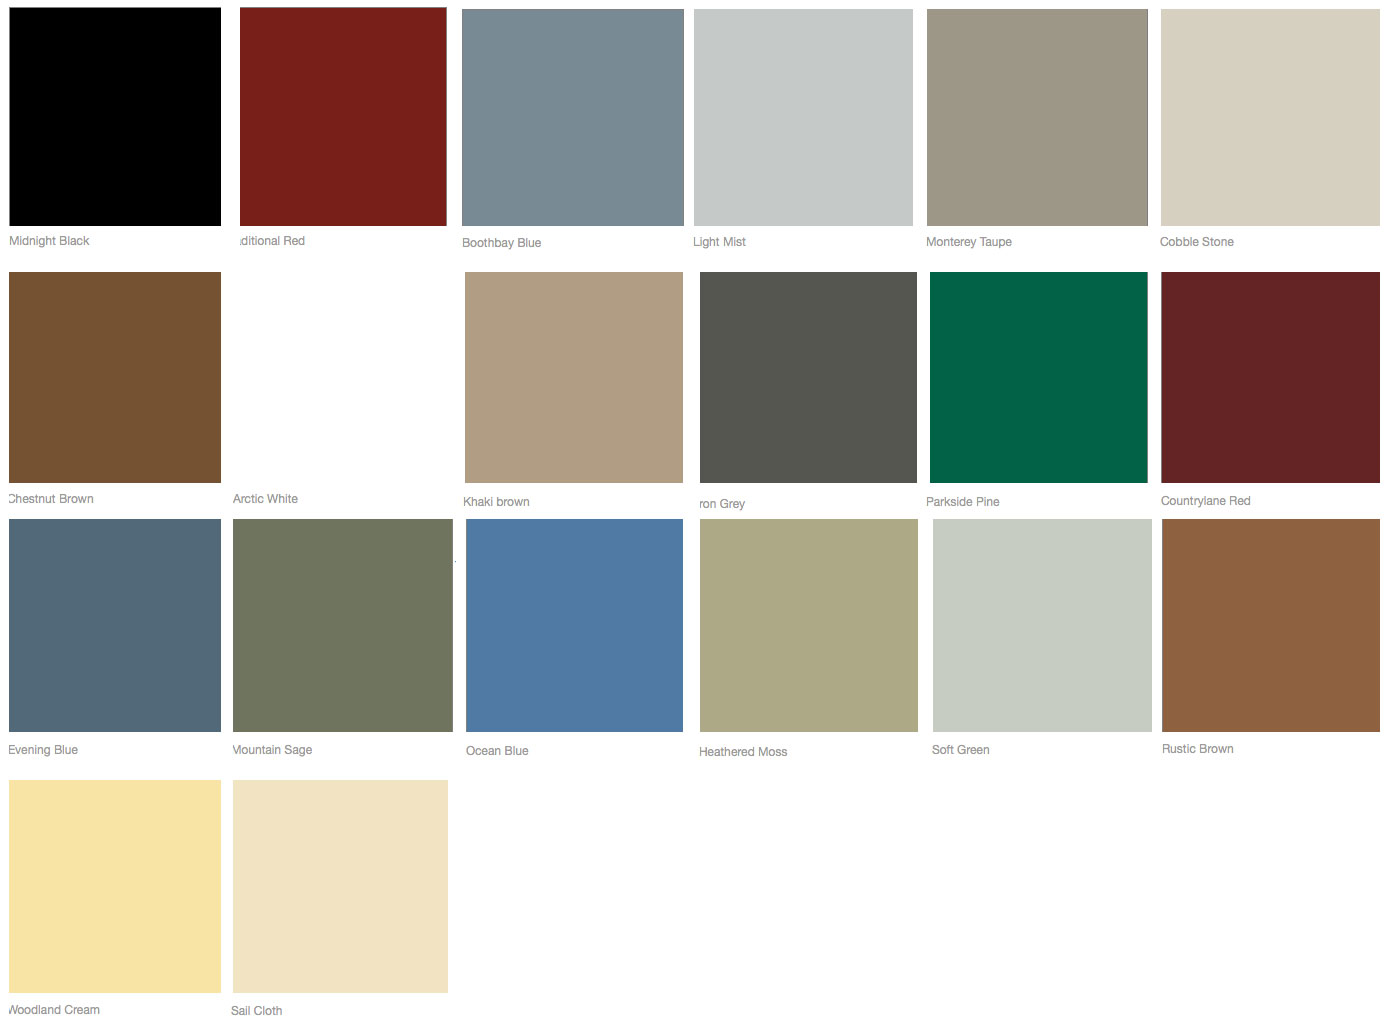 JamesHardi-ColourChart-Weatherboard